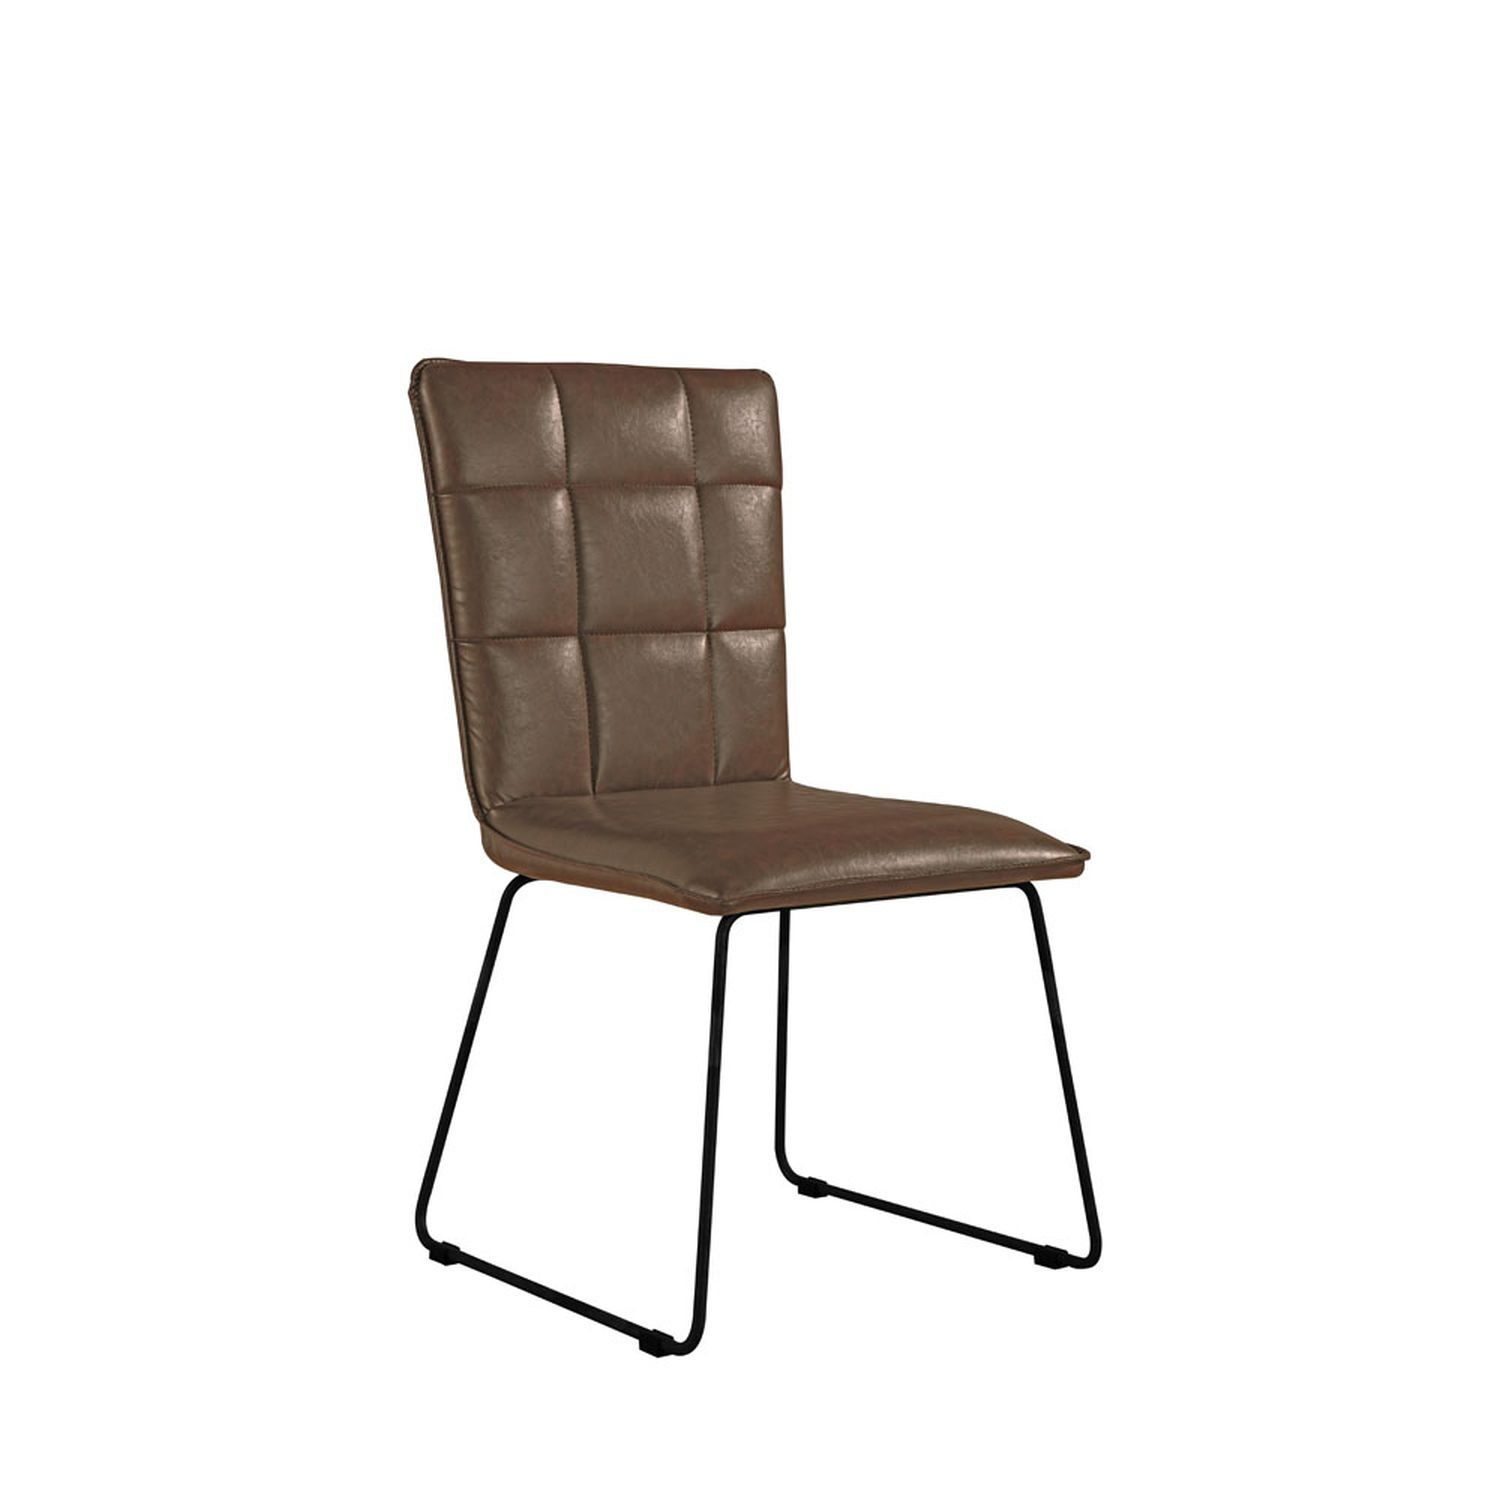 Image of Casa Pair of Panel Dining Chairs, Brown